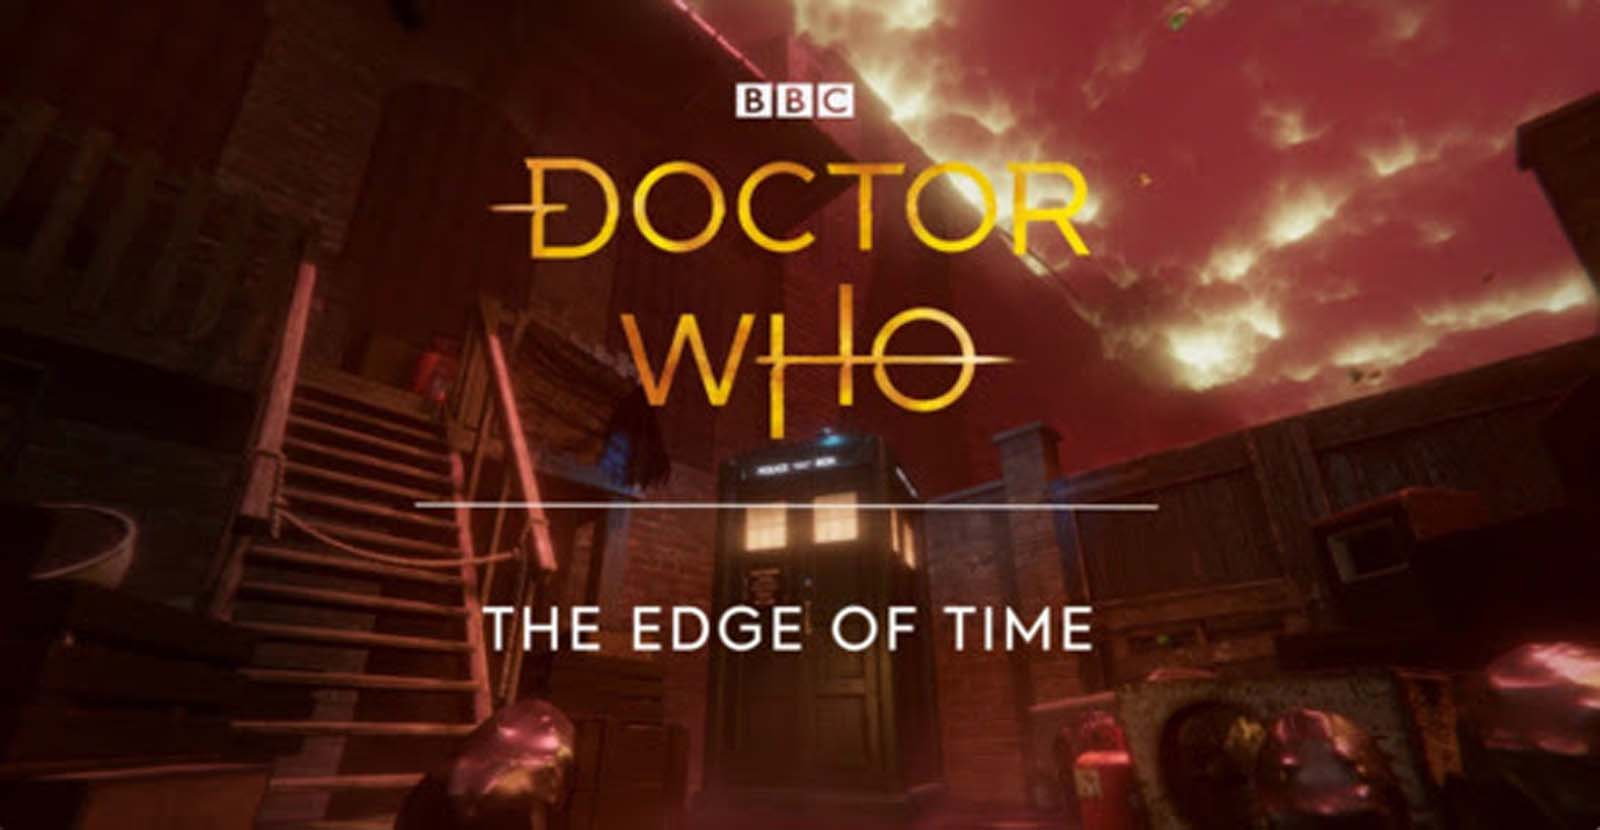 Doctor Who The Edge of Time